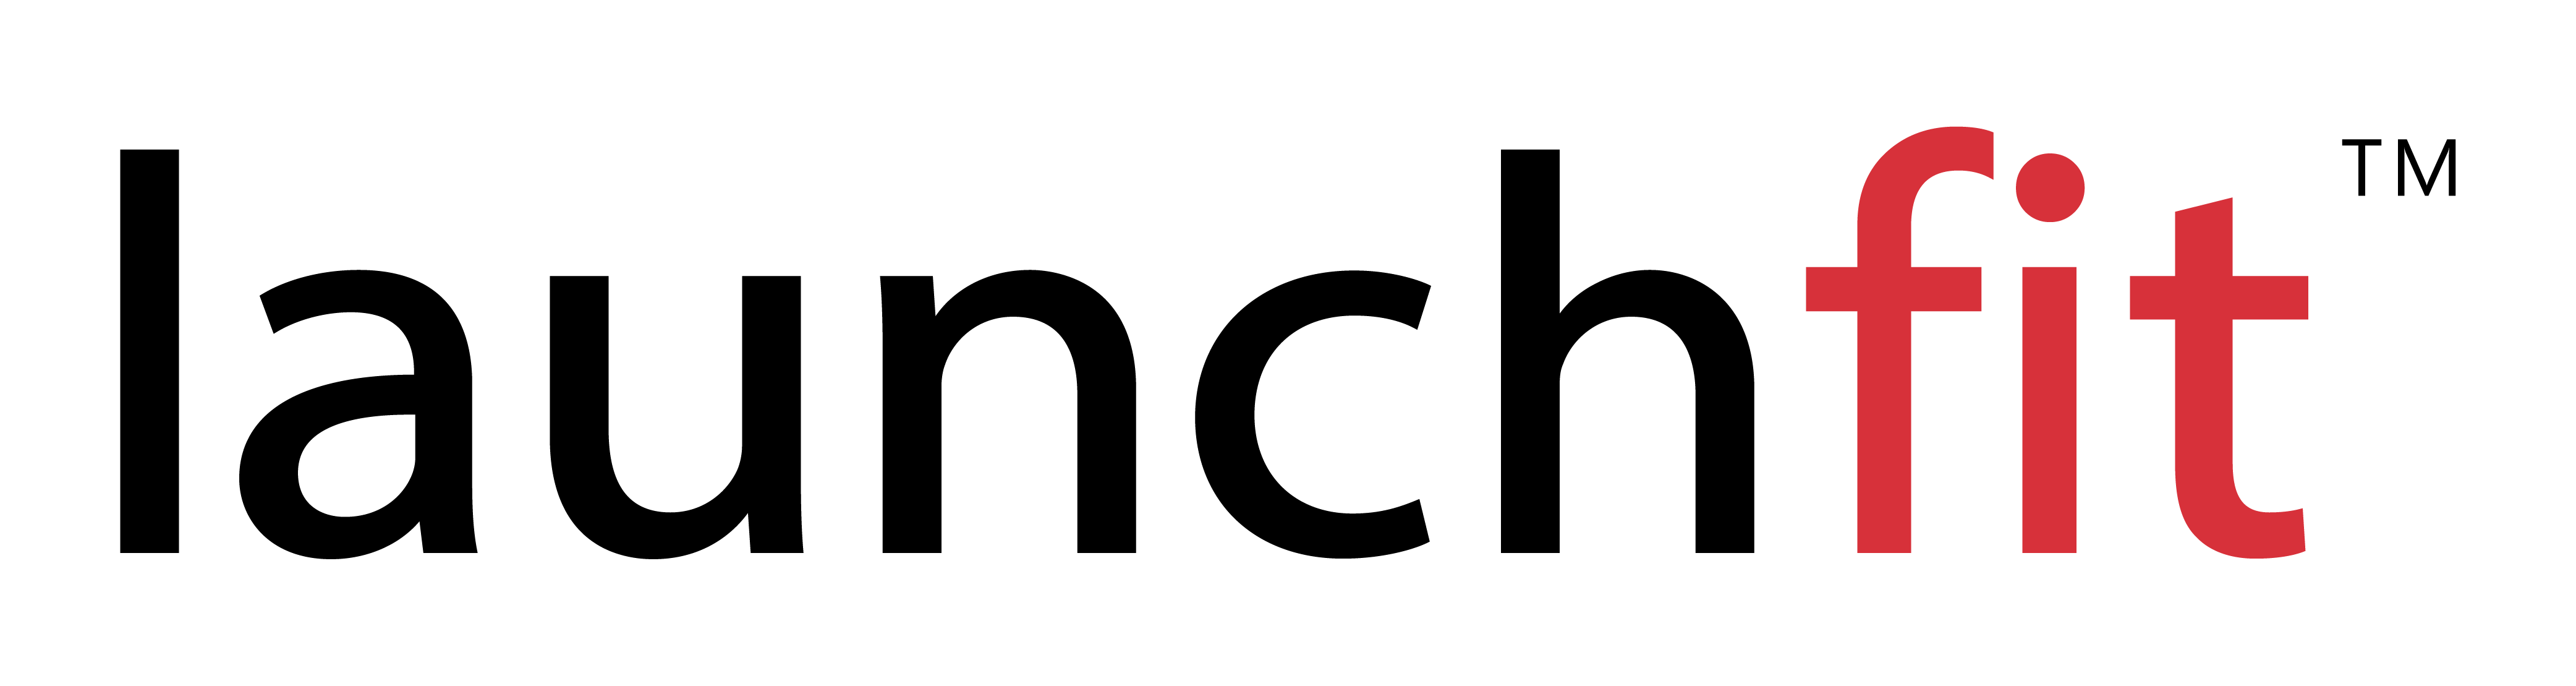 Launchfit™ | Chiropractic + Physical Therapy + Fitness in New York, NY